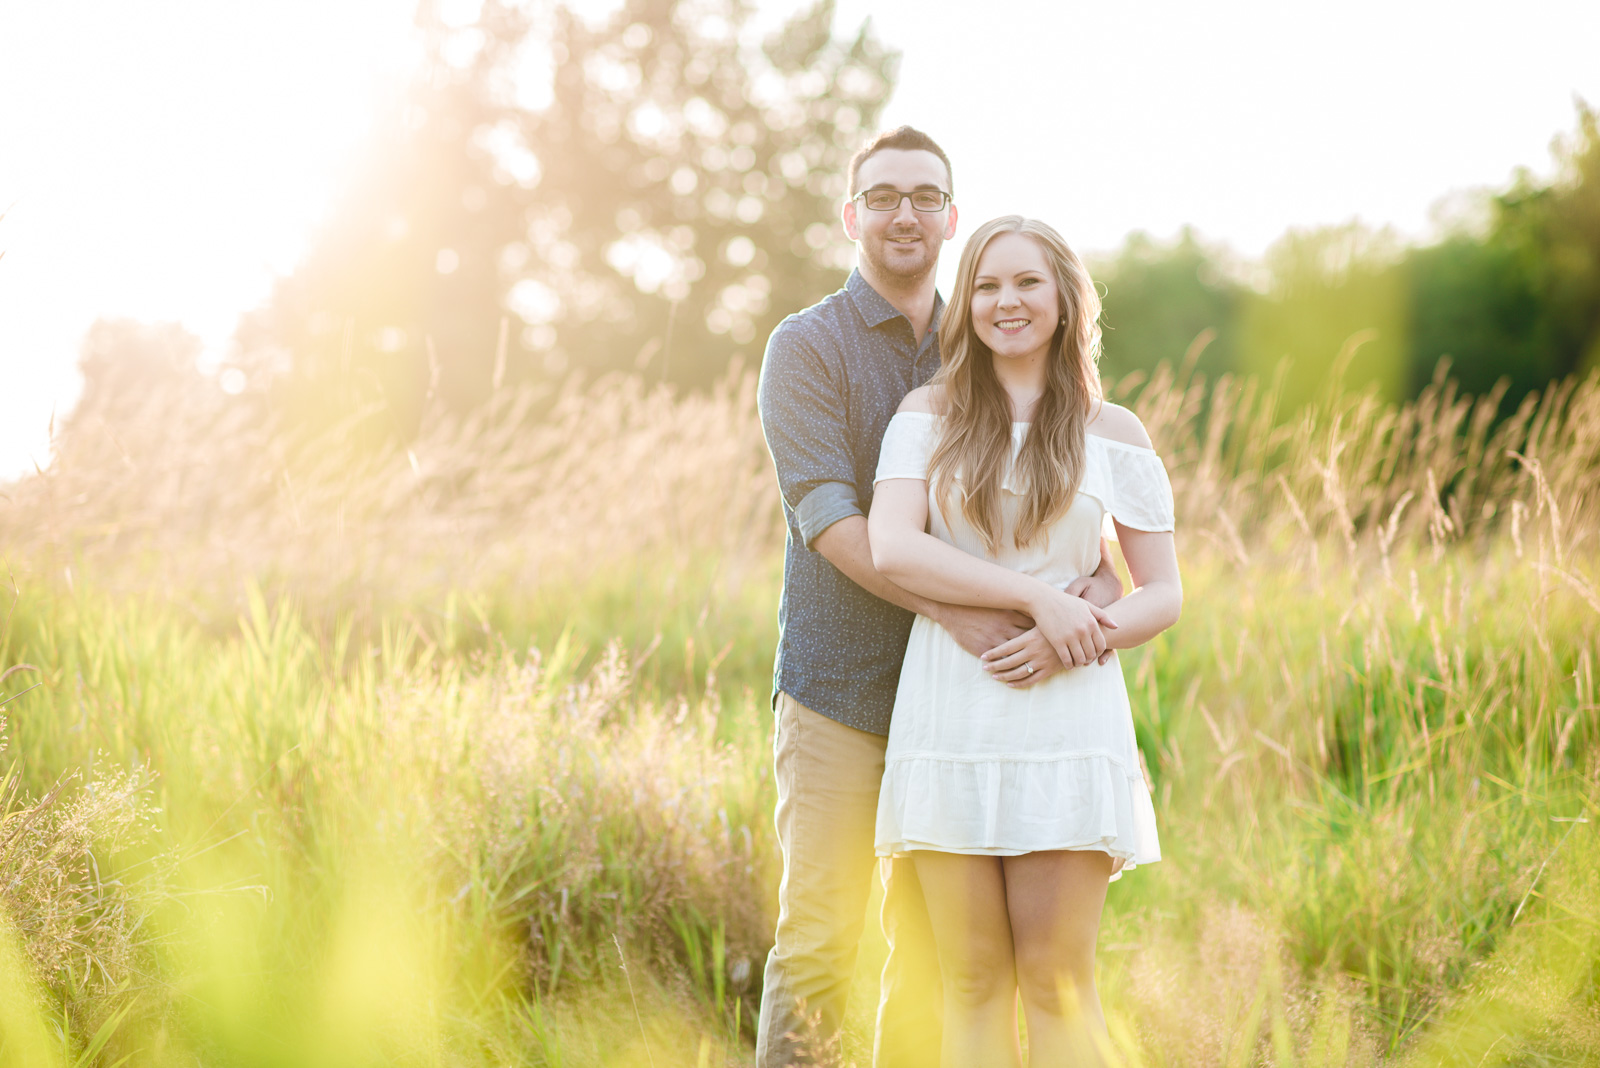 vancouver-island-wedding-photographers-campbell-valley-park-engagement-session-07.jpg